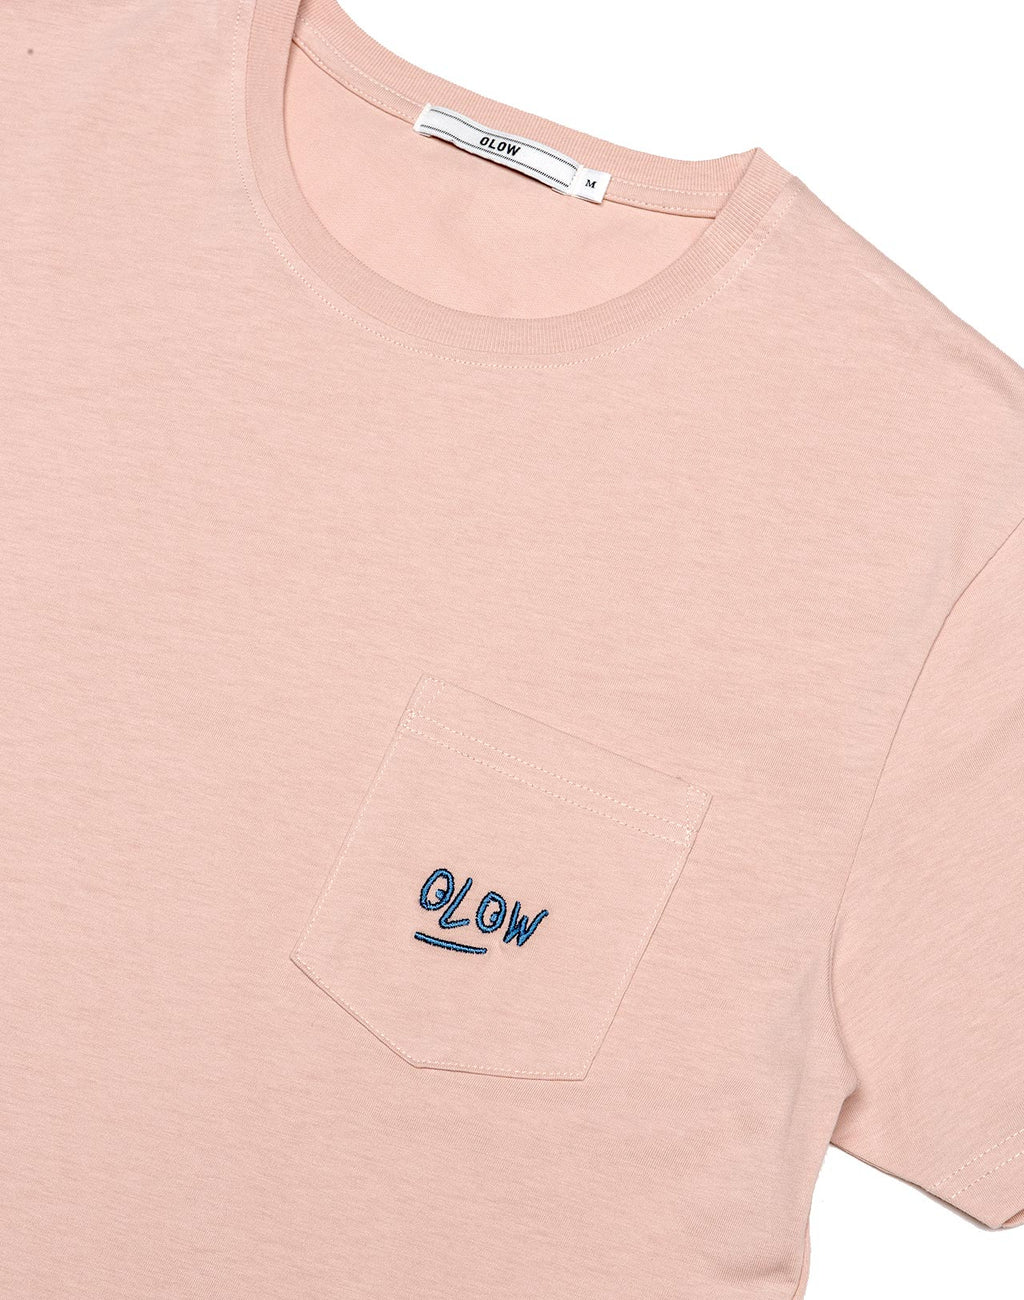 Olow t-shirt alex21 rose